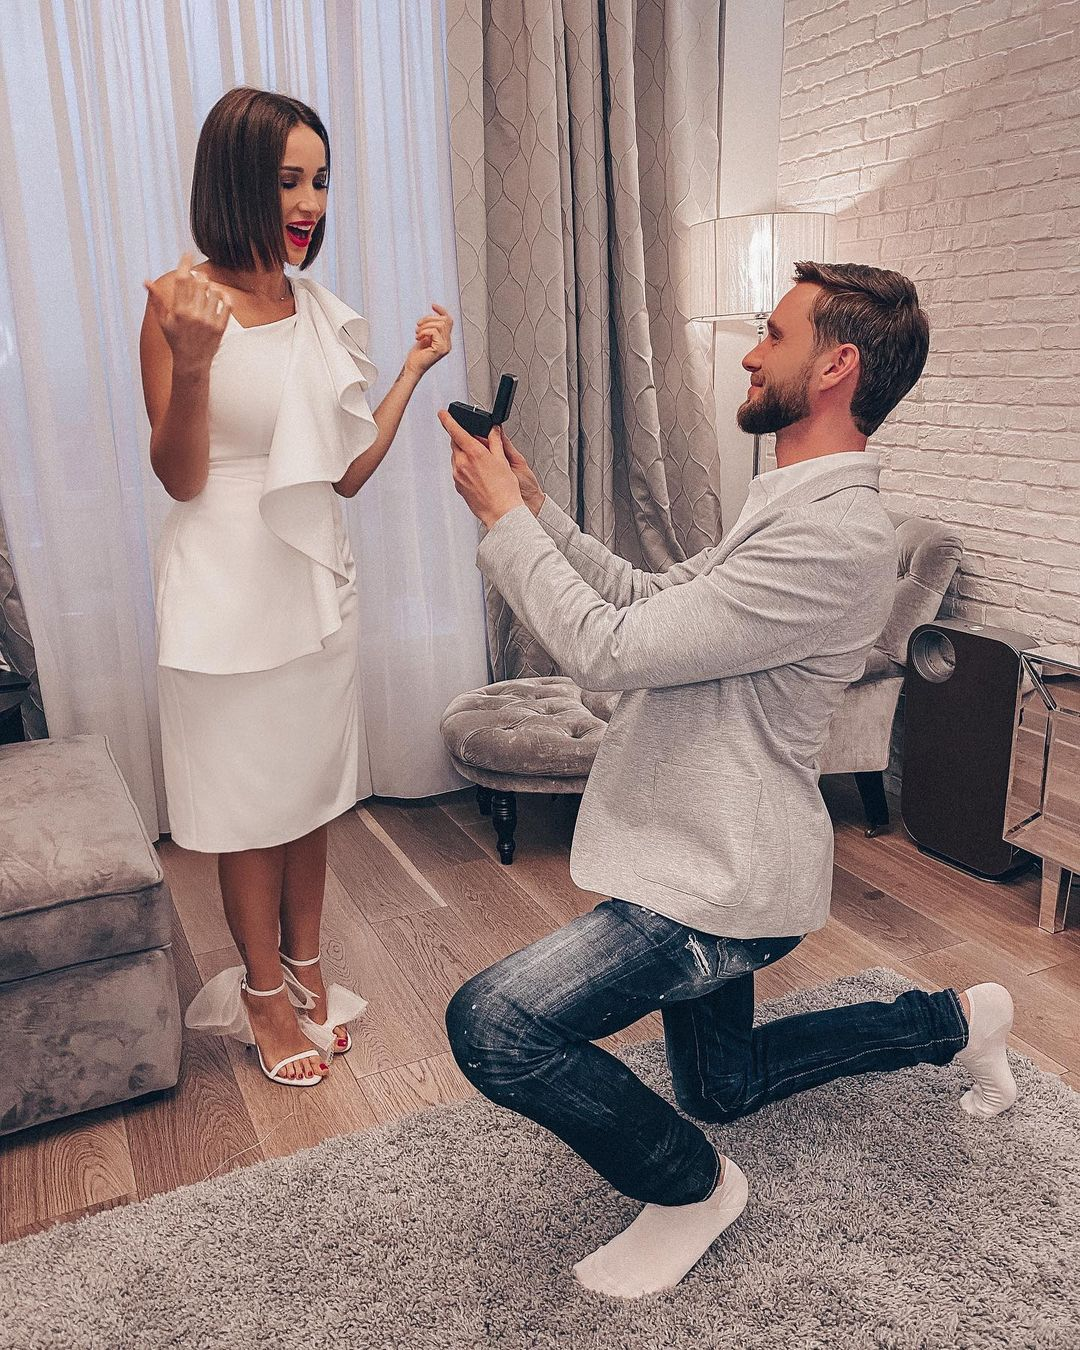 Anfisa Chekhova received a wedding ring as a gift and thought about marriage